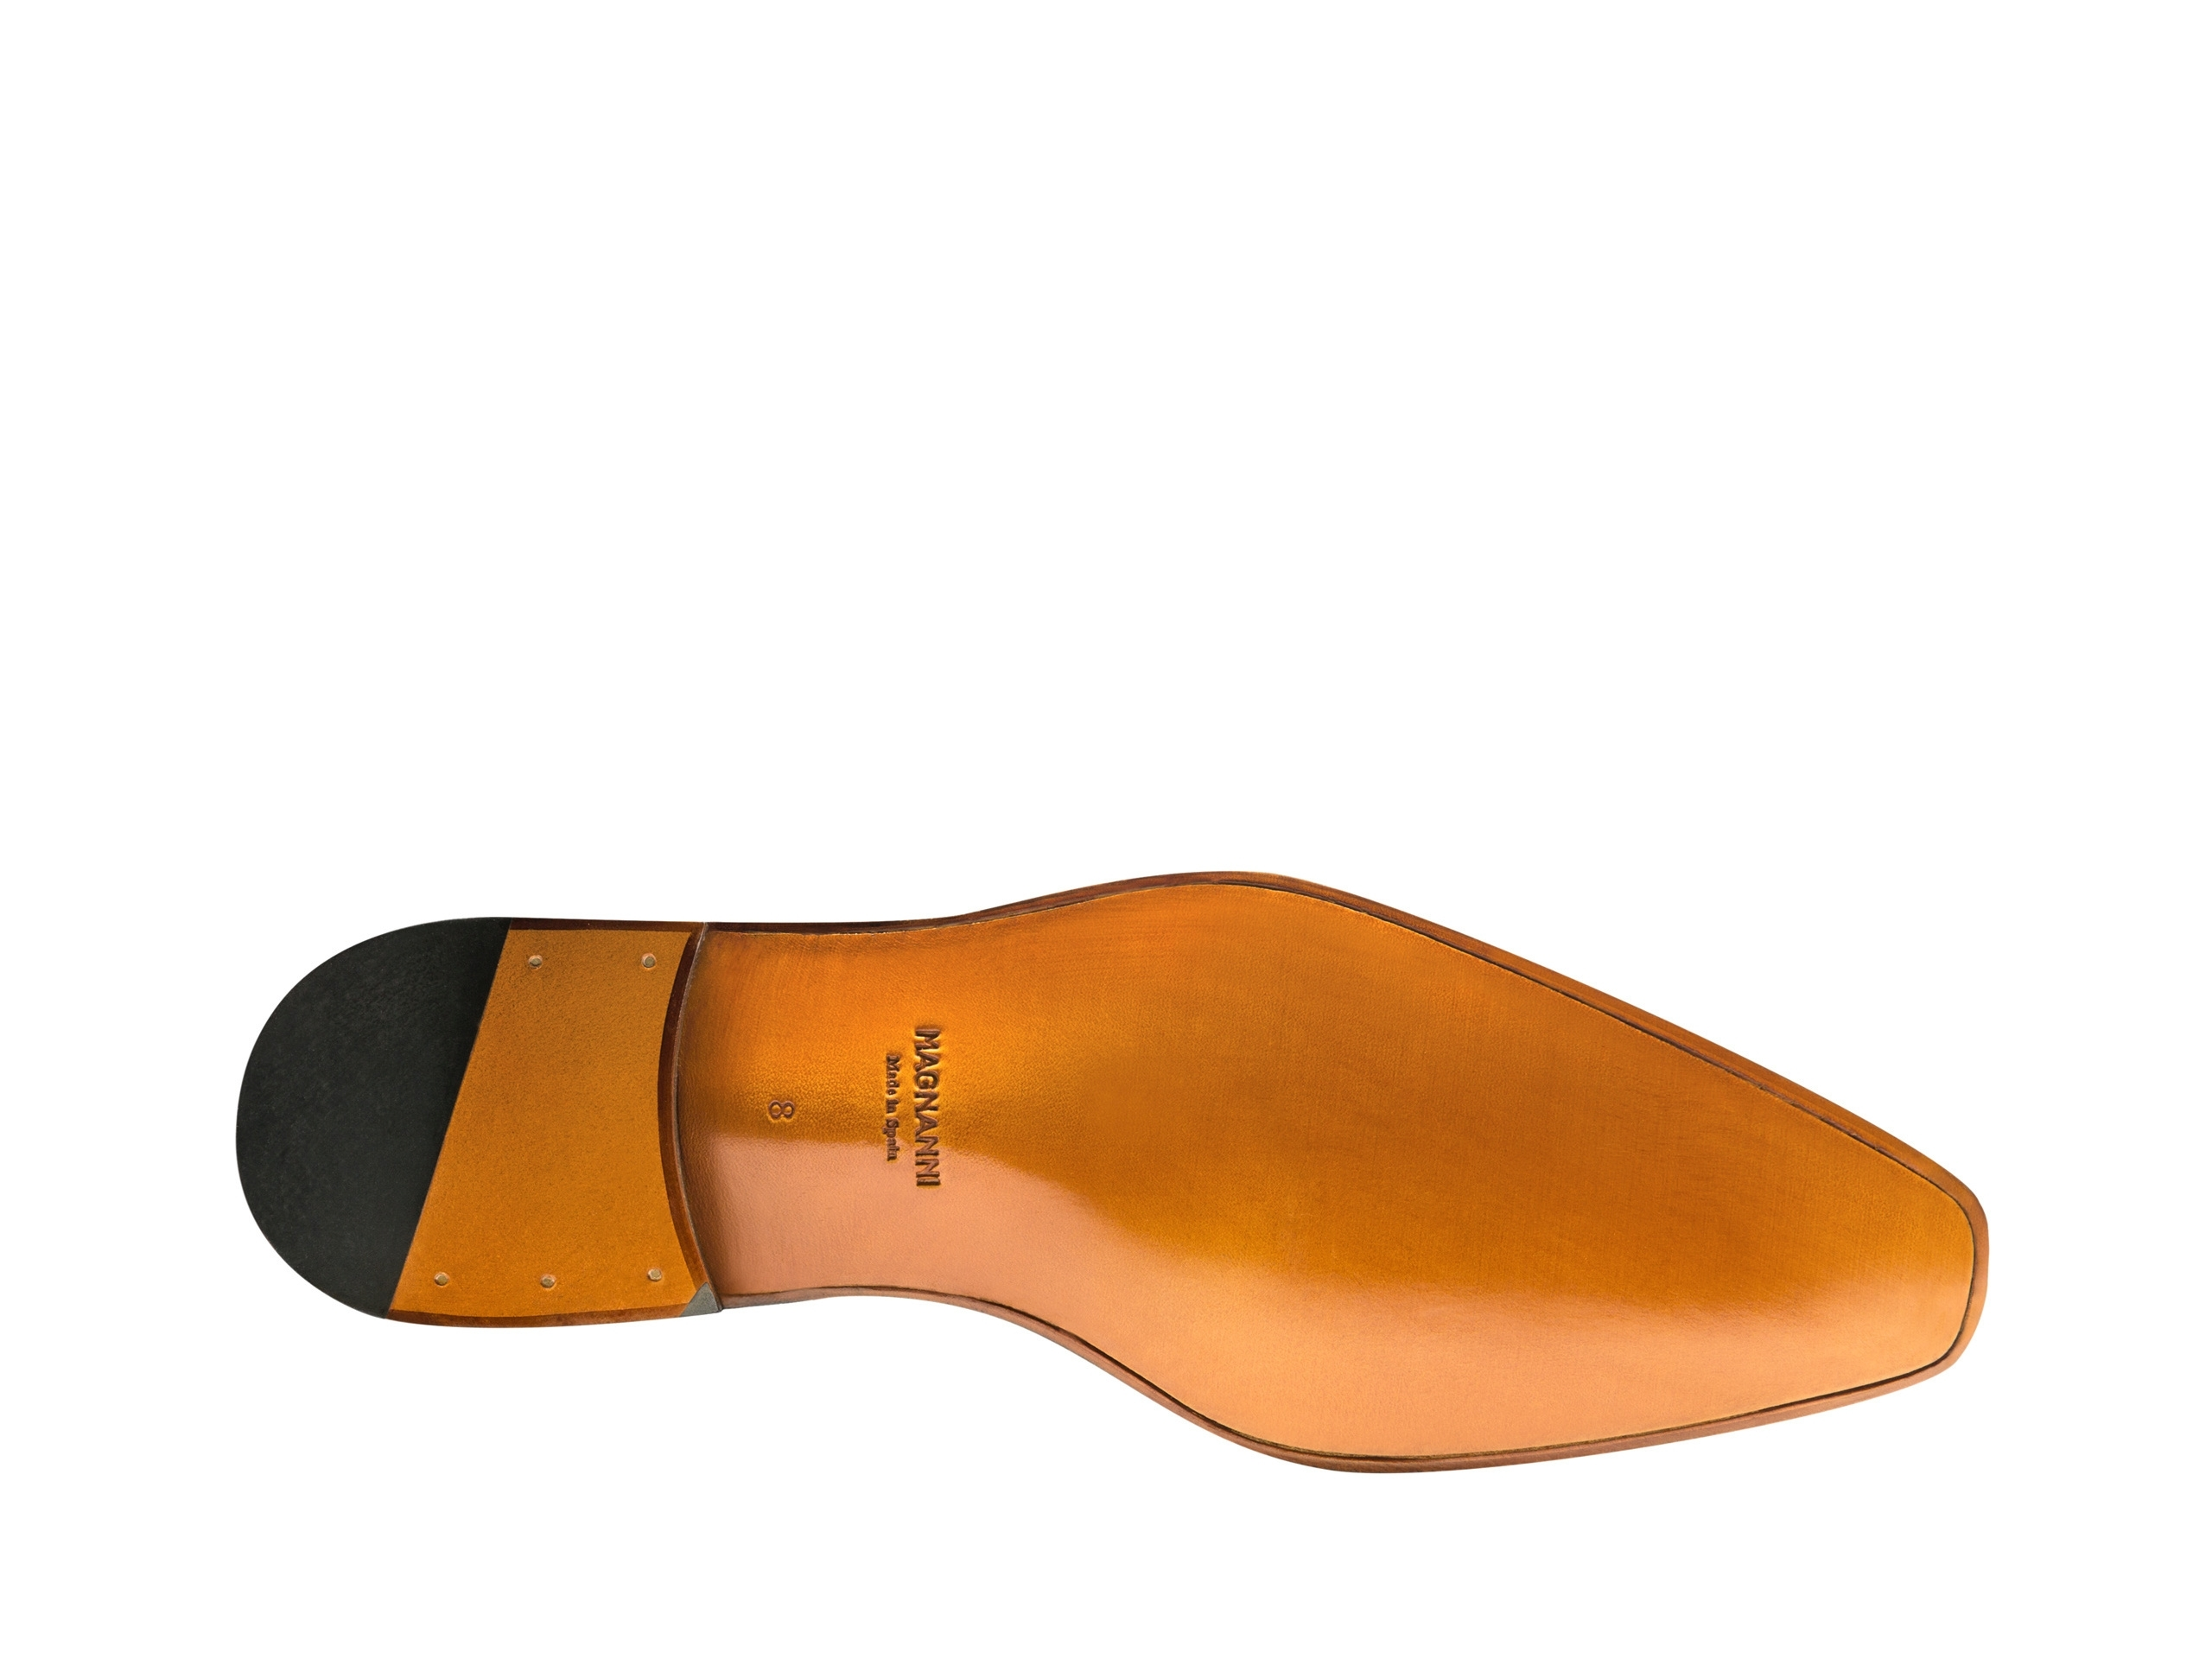 The sole of the Efren